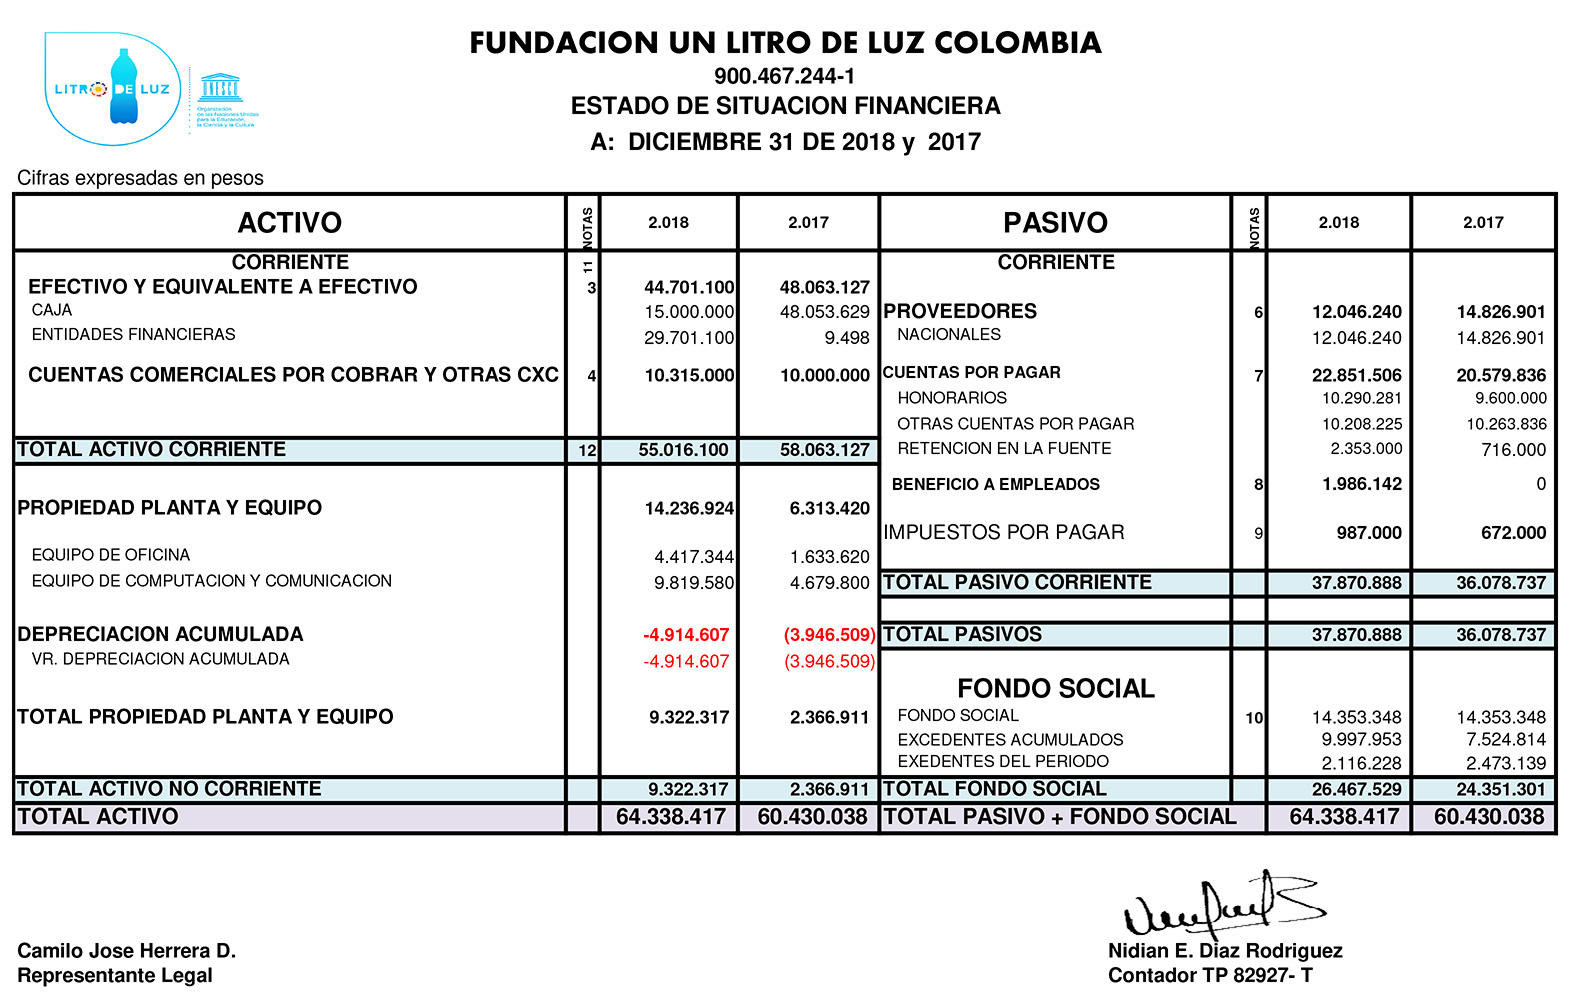 Estado Financiero Litro de Luz 2018